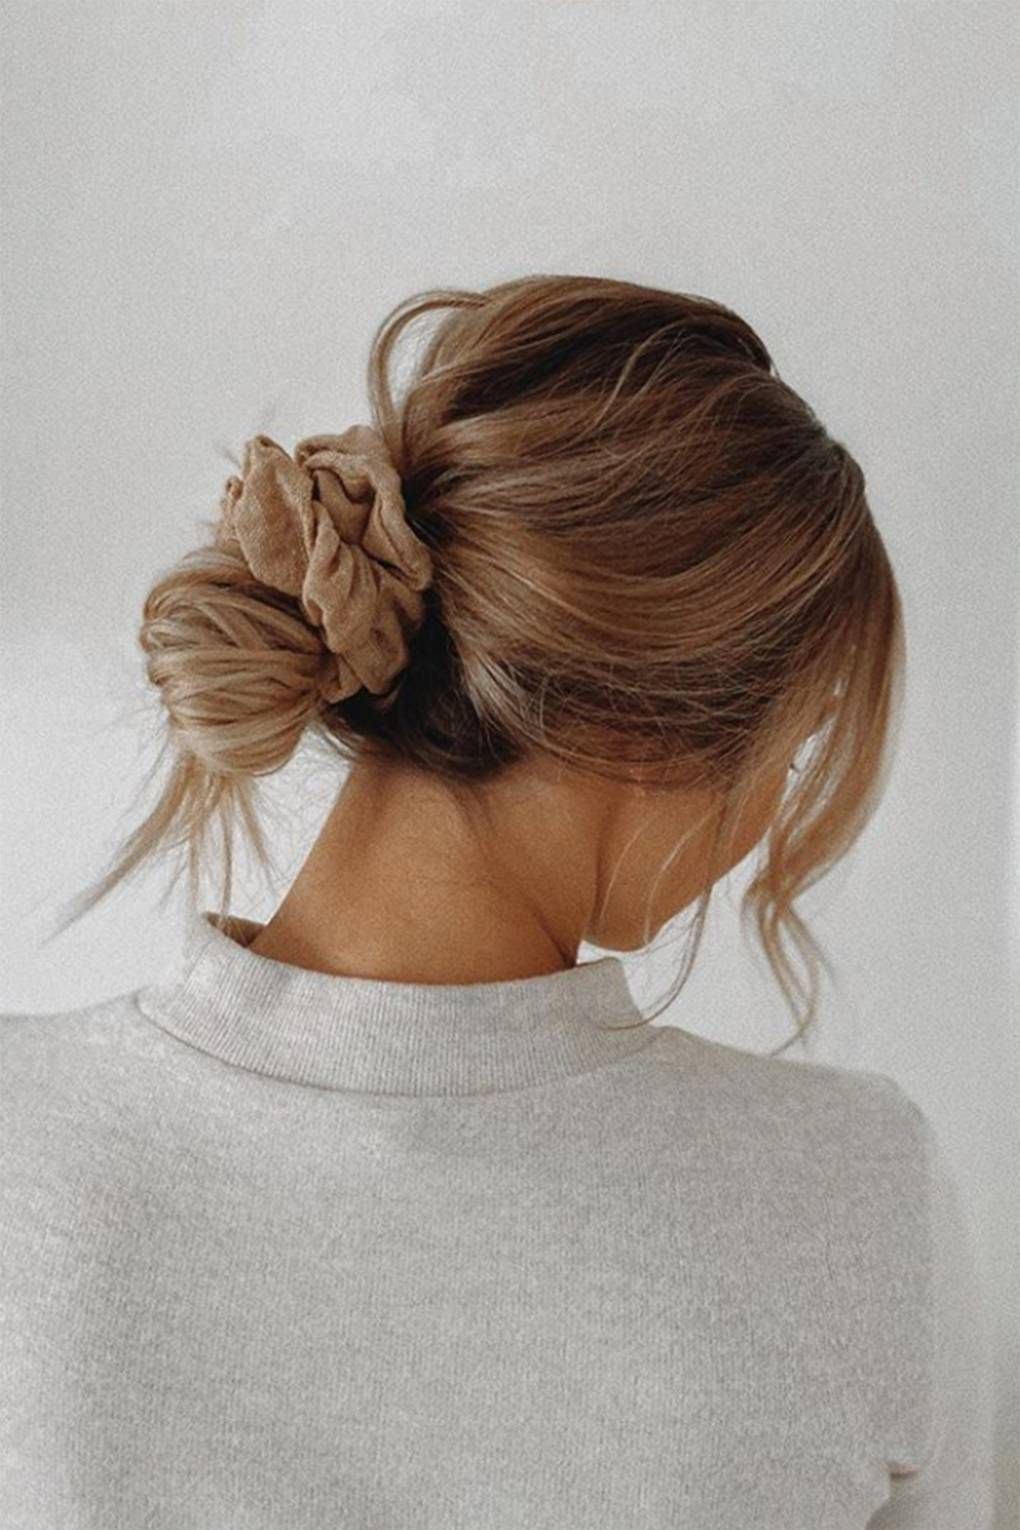 From salt kinks to low knots: The effortless winte